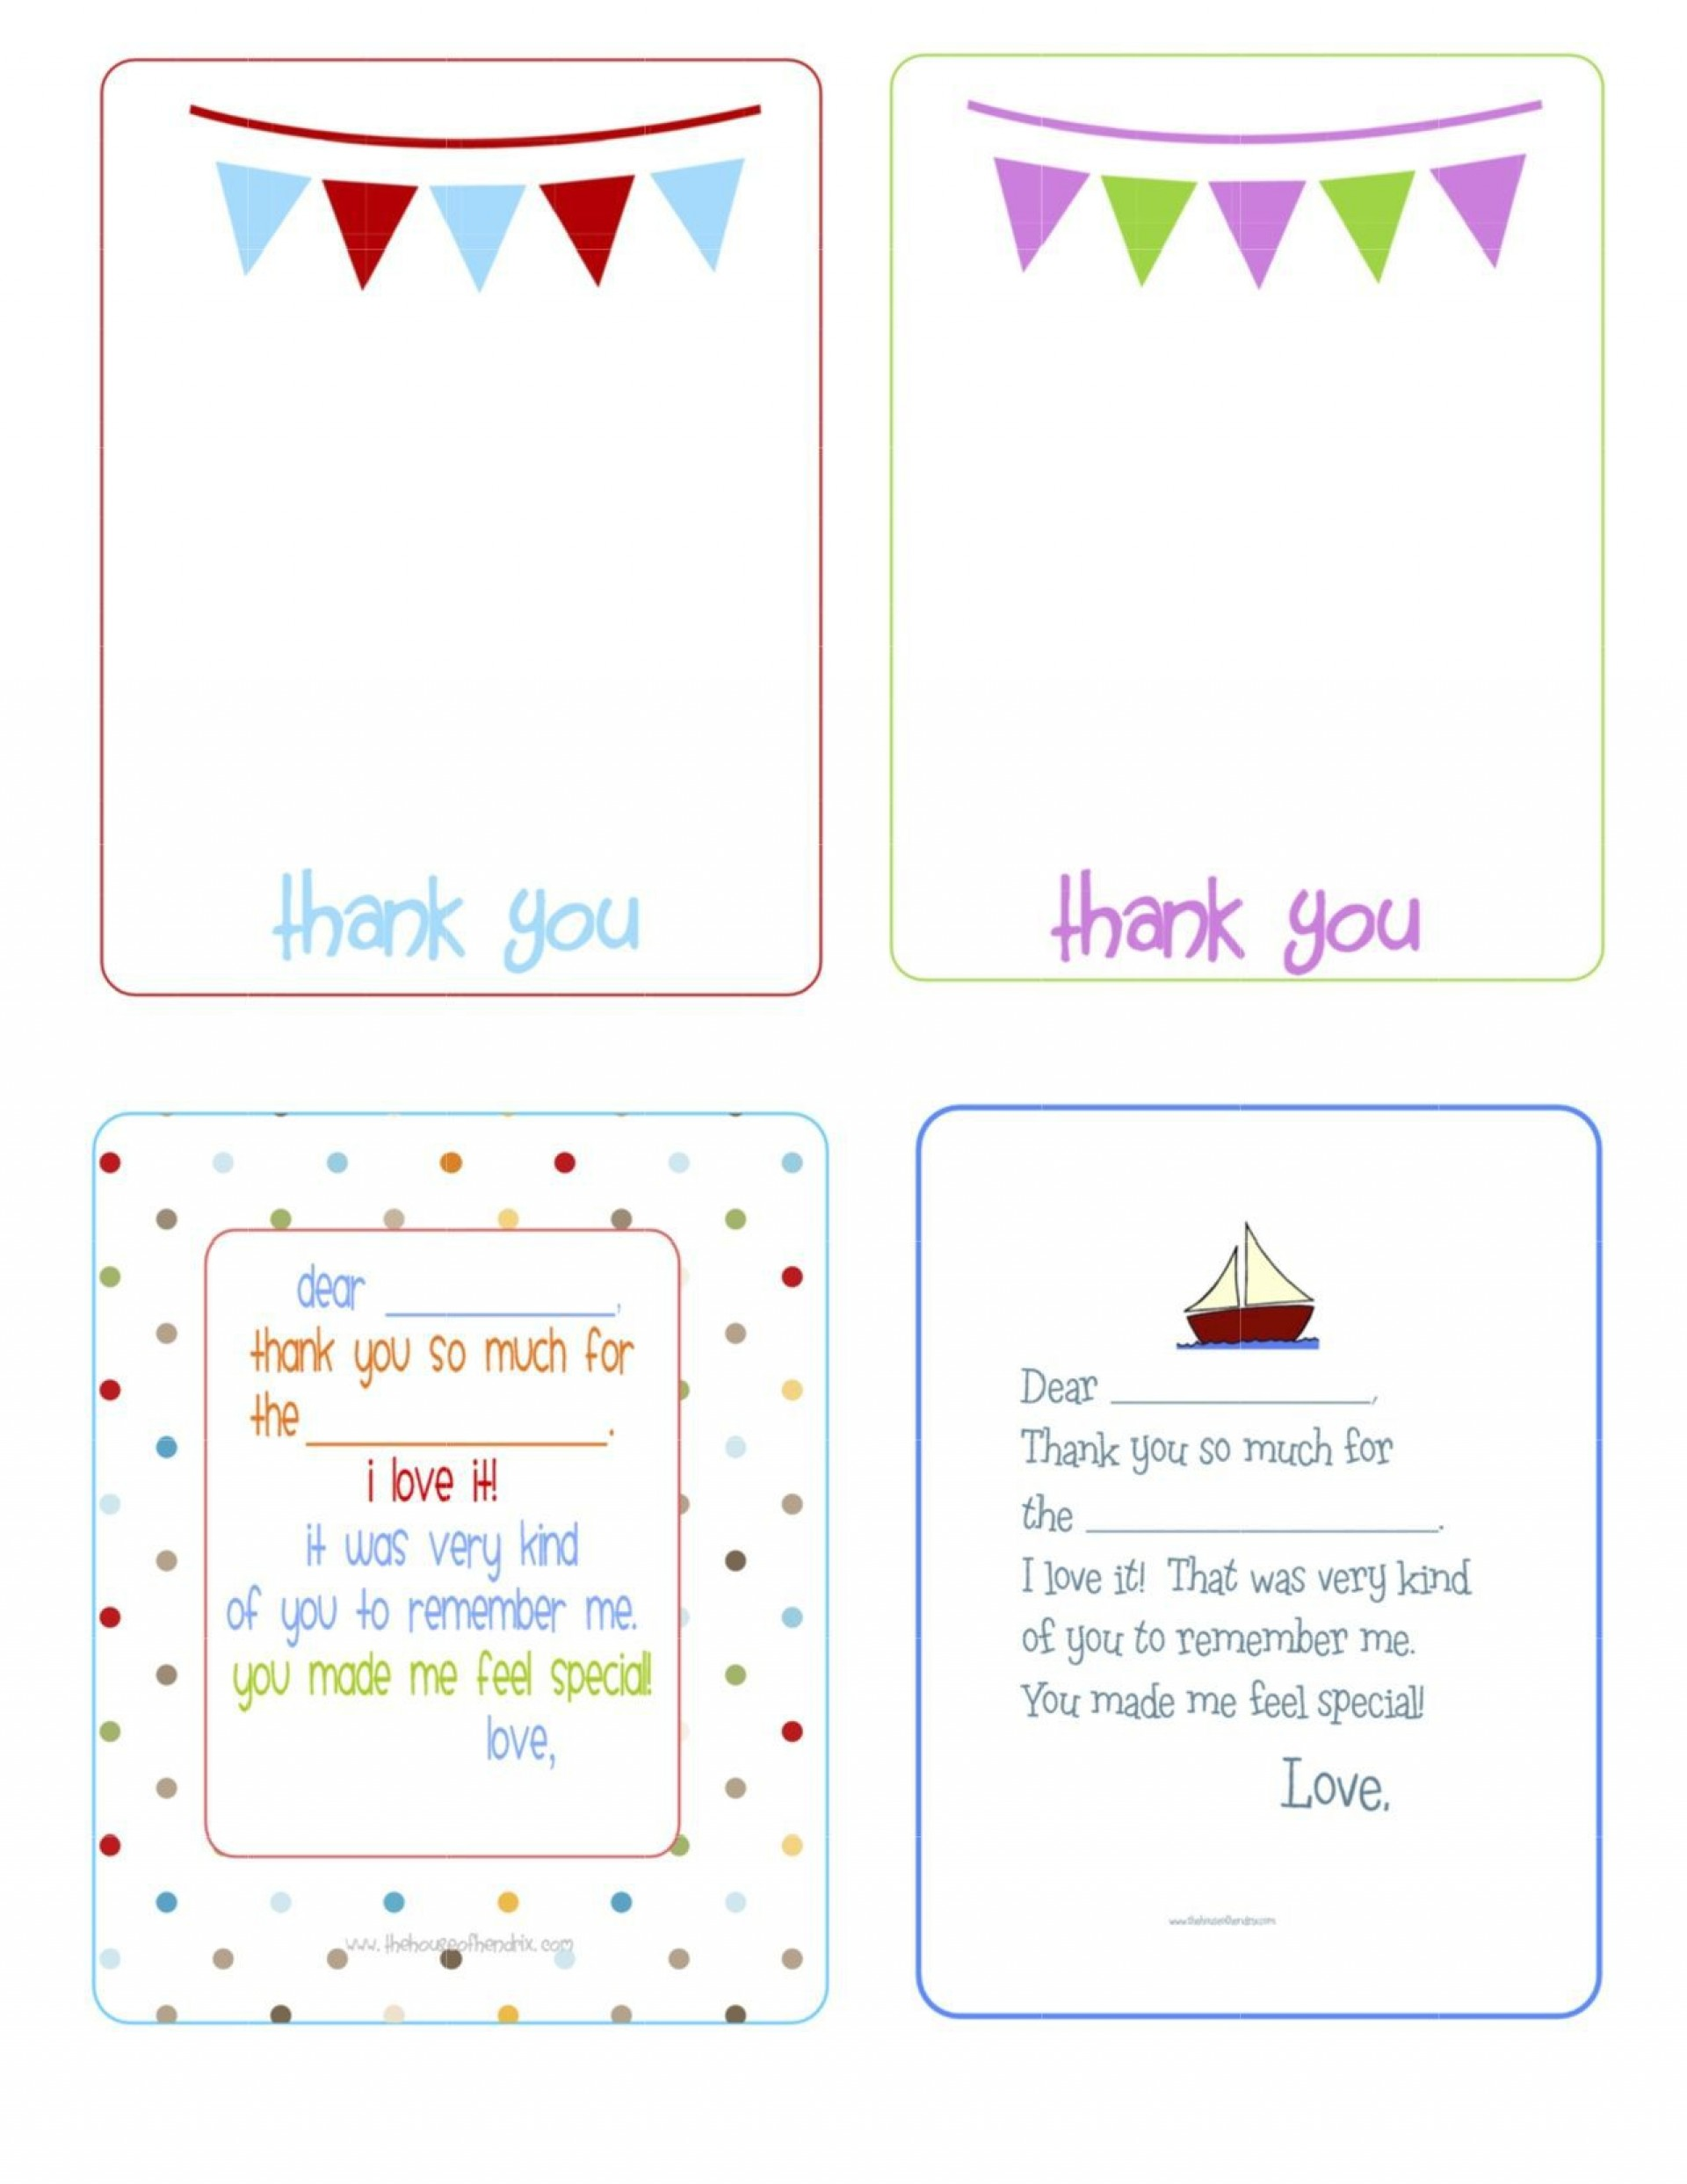 002 Stirring Thank You Note Template Printable Inspiration  Letter Baby Card Word1920